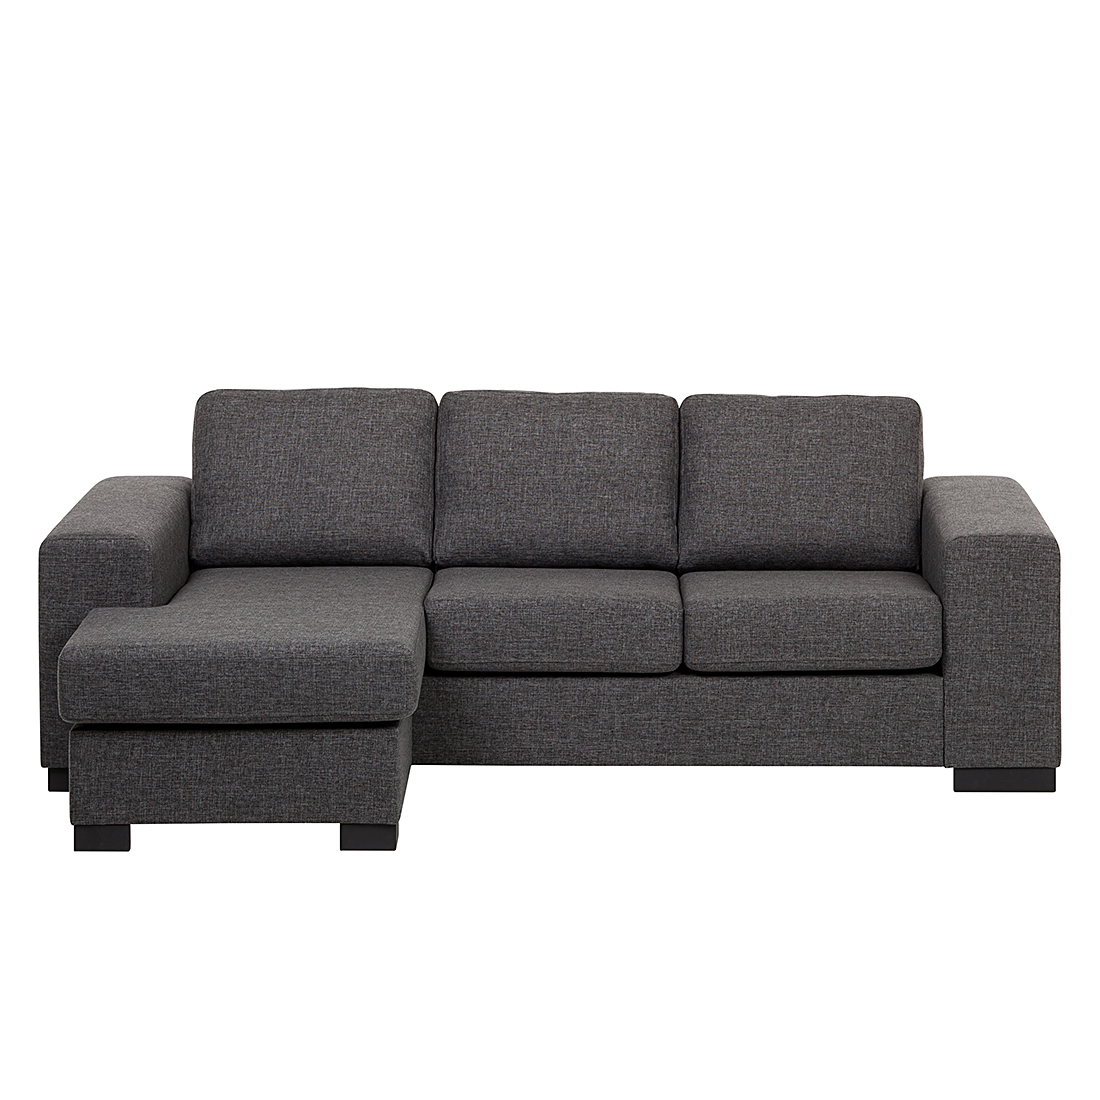 ecksofa strukturstoff grau schlafsofa couch sofa. Black Bedroom Furniture Sets. Home Design Ideas